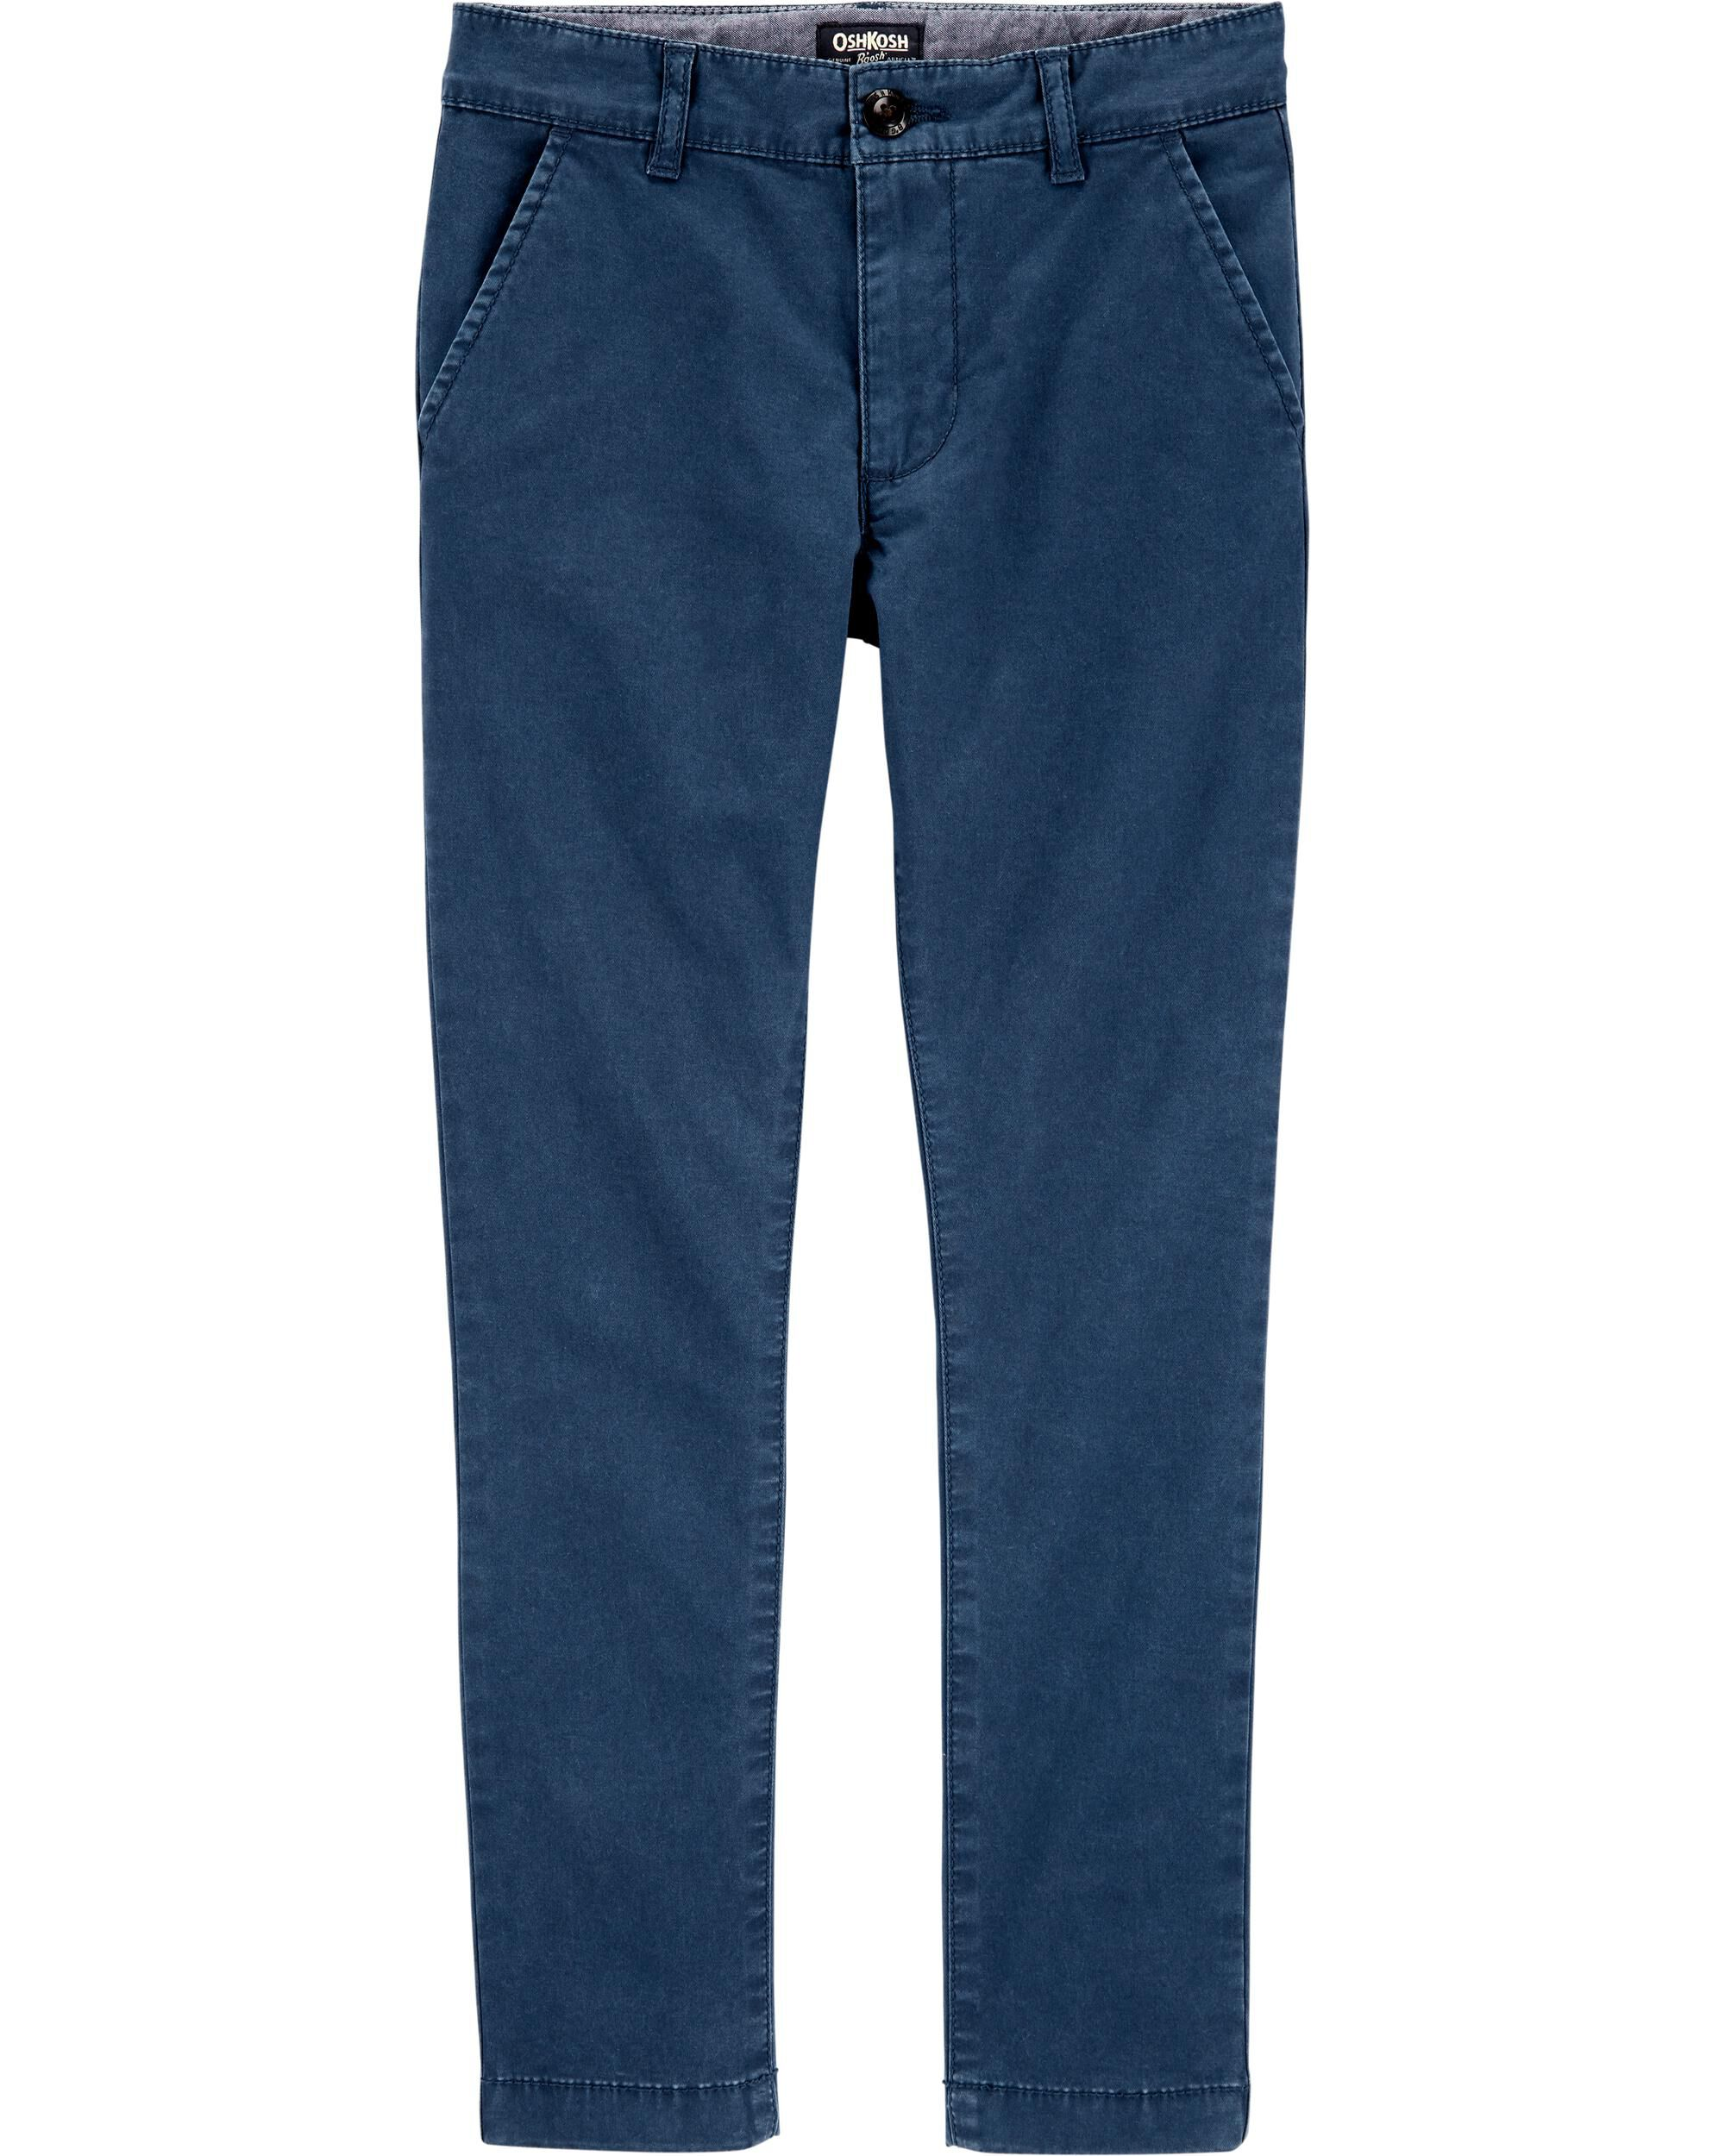 *CLEARANCE* Stretch Chinos